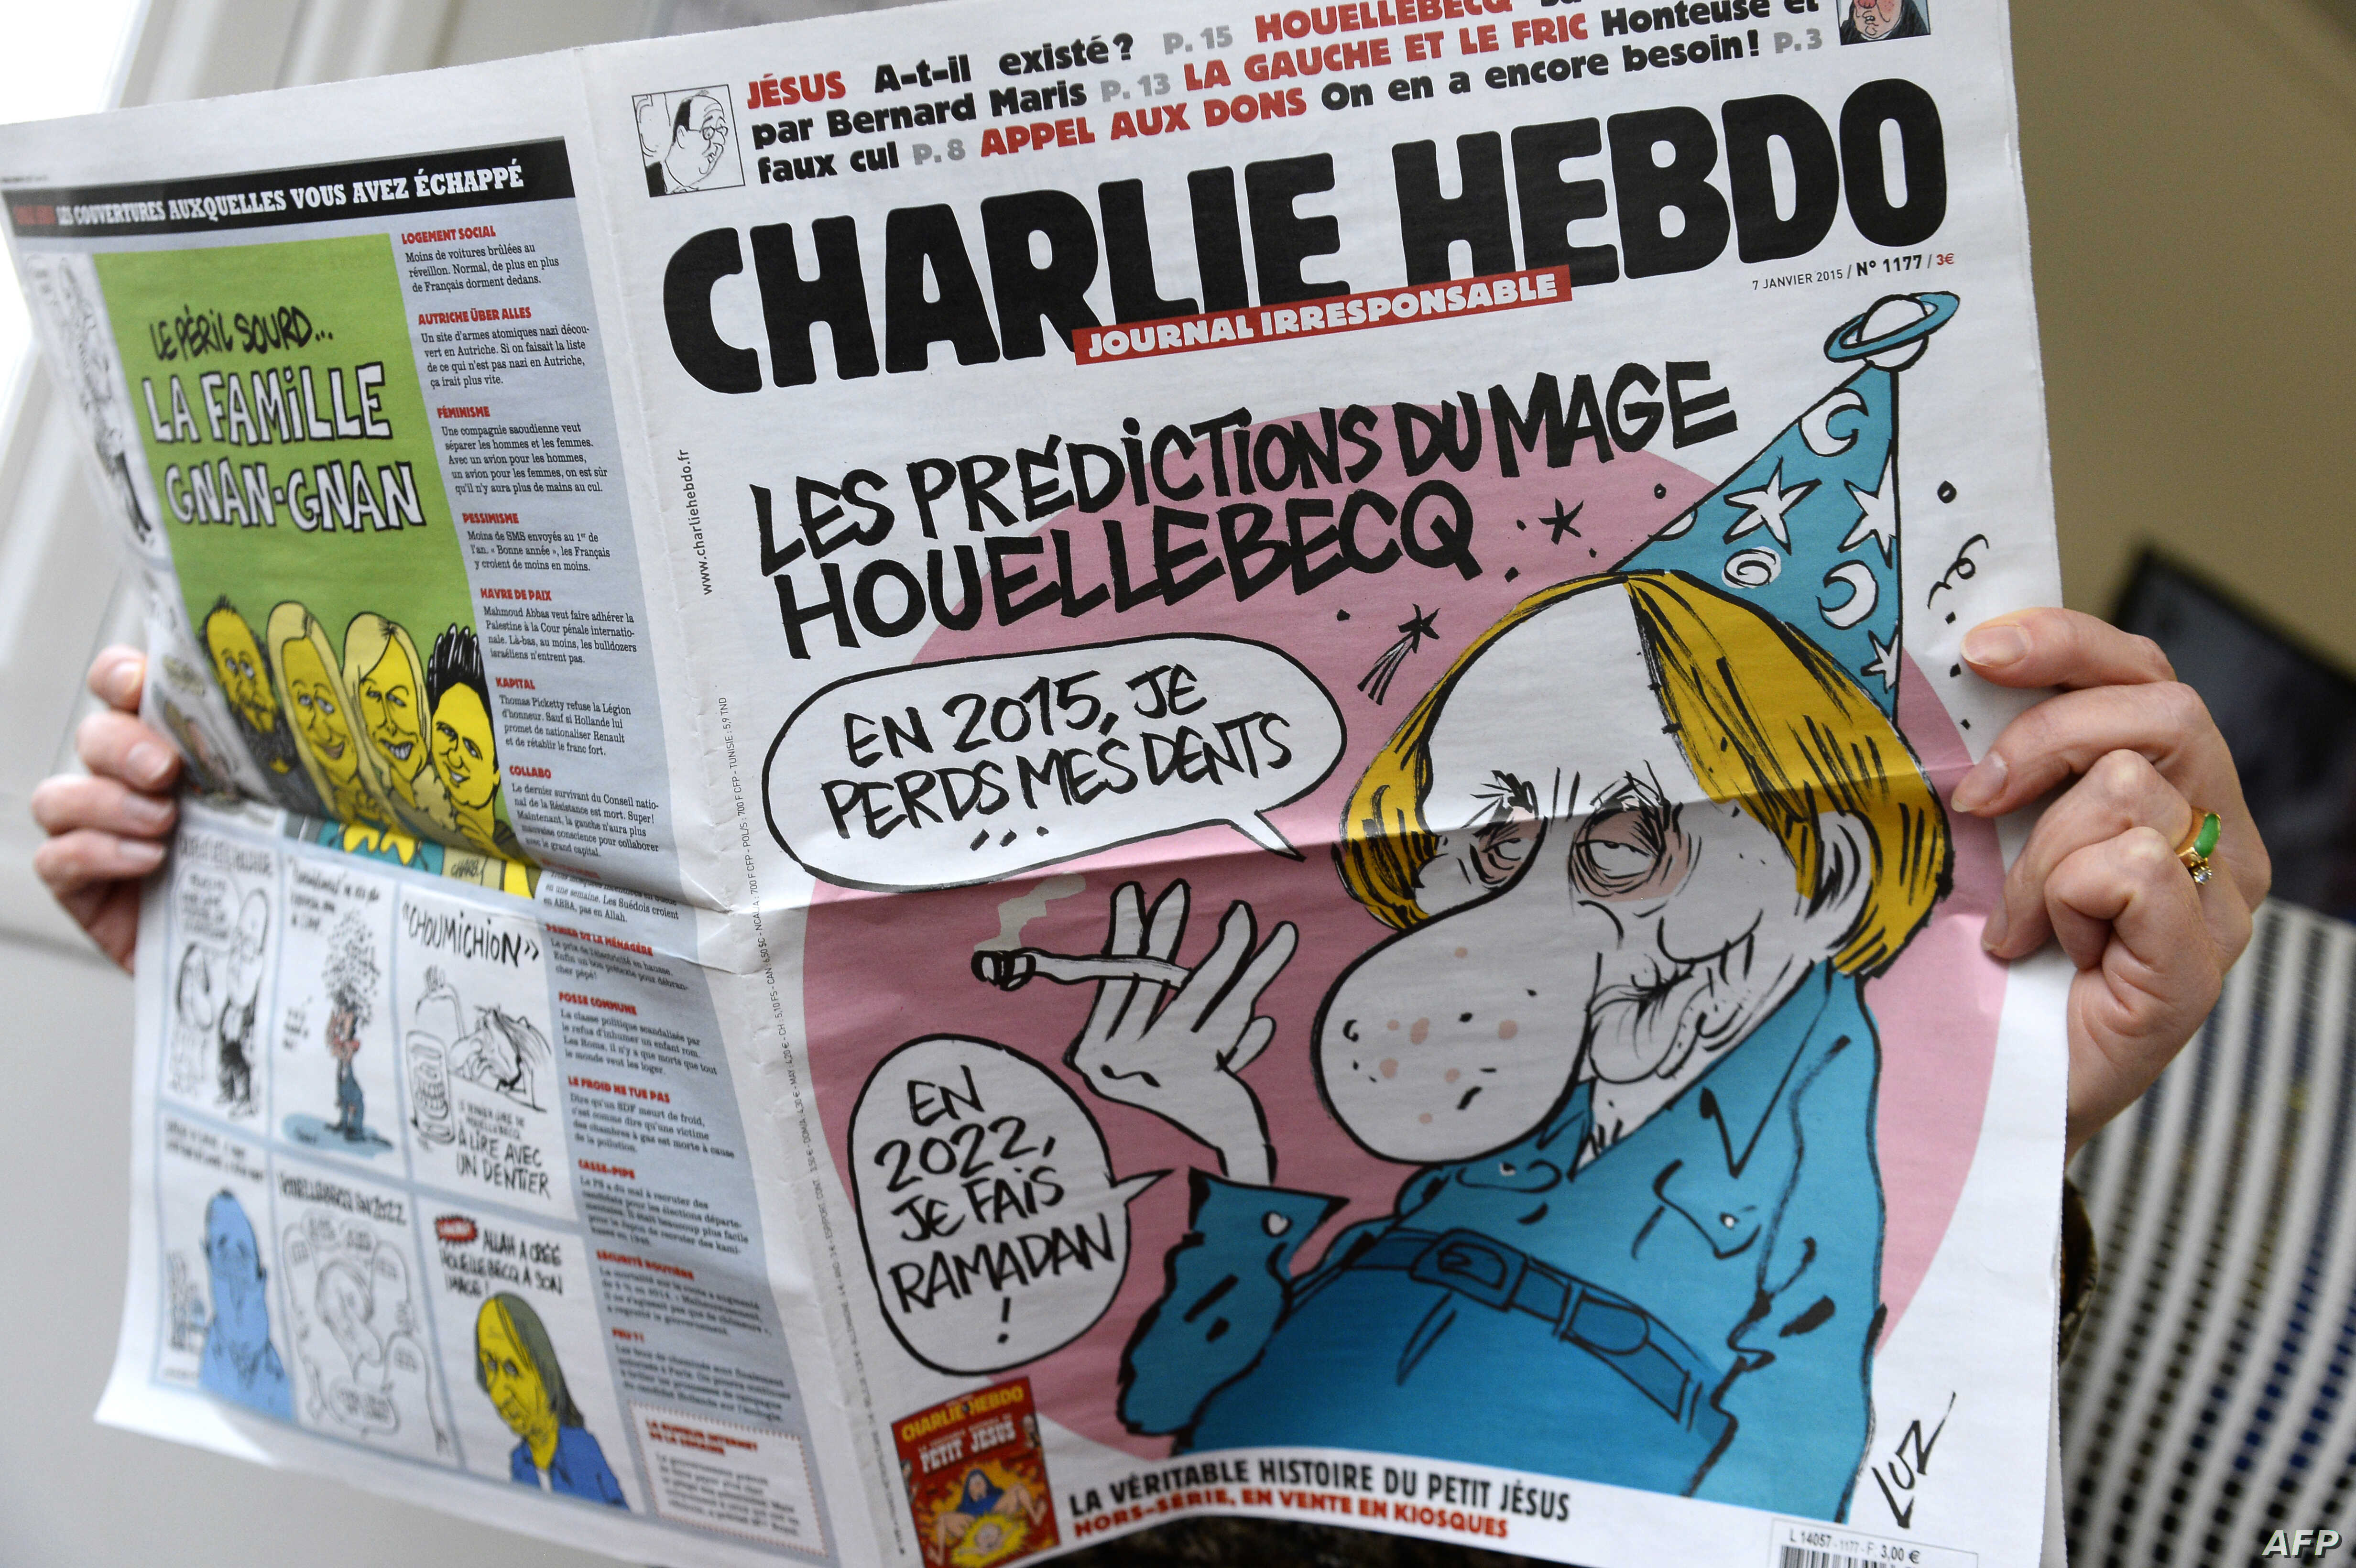 A person reads the latest issue of the French satirical newspaper Charlie Hebdo in Paris after gunmen armed with Kalashnikovs and a rocket-launcher opened fire in the offices of the weekly in Paris, killing at least 11, Jan. 7, 2015.